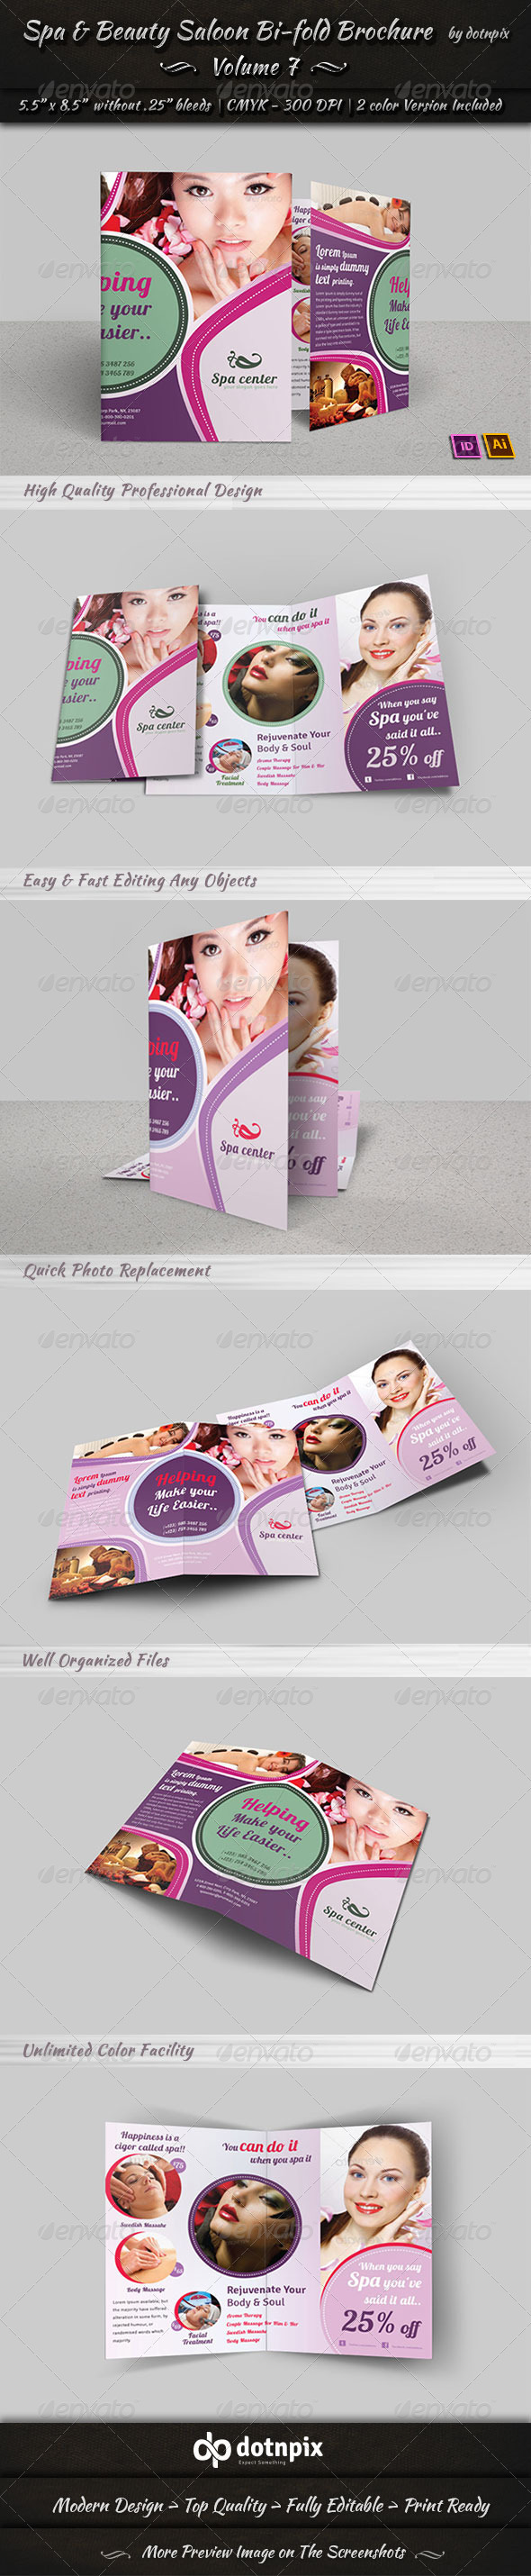 GraphicRiver Spa & Beauty Saloon Bi-fold Brochure Volume 7 7874413